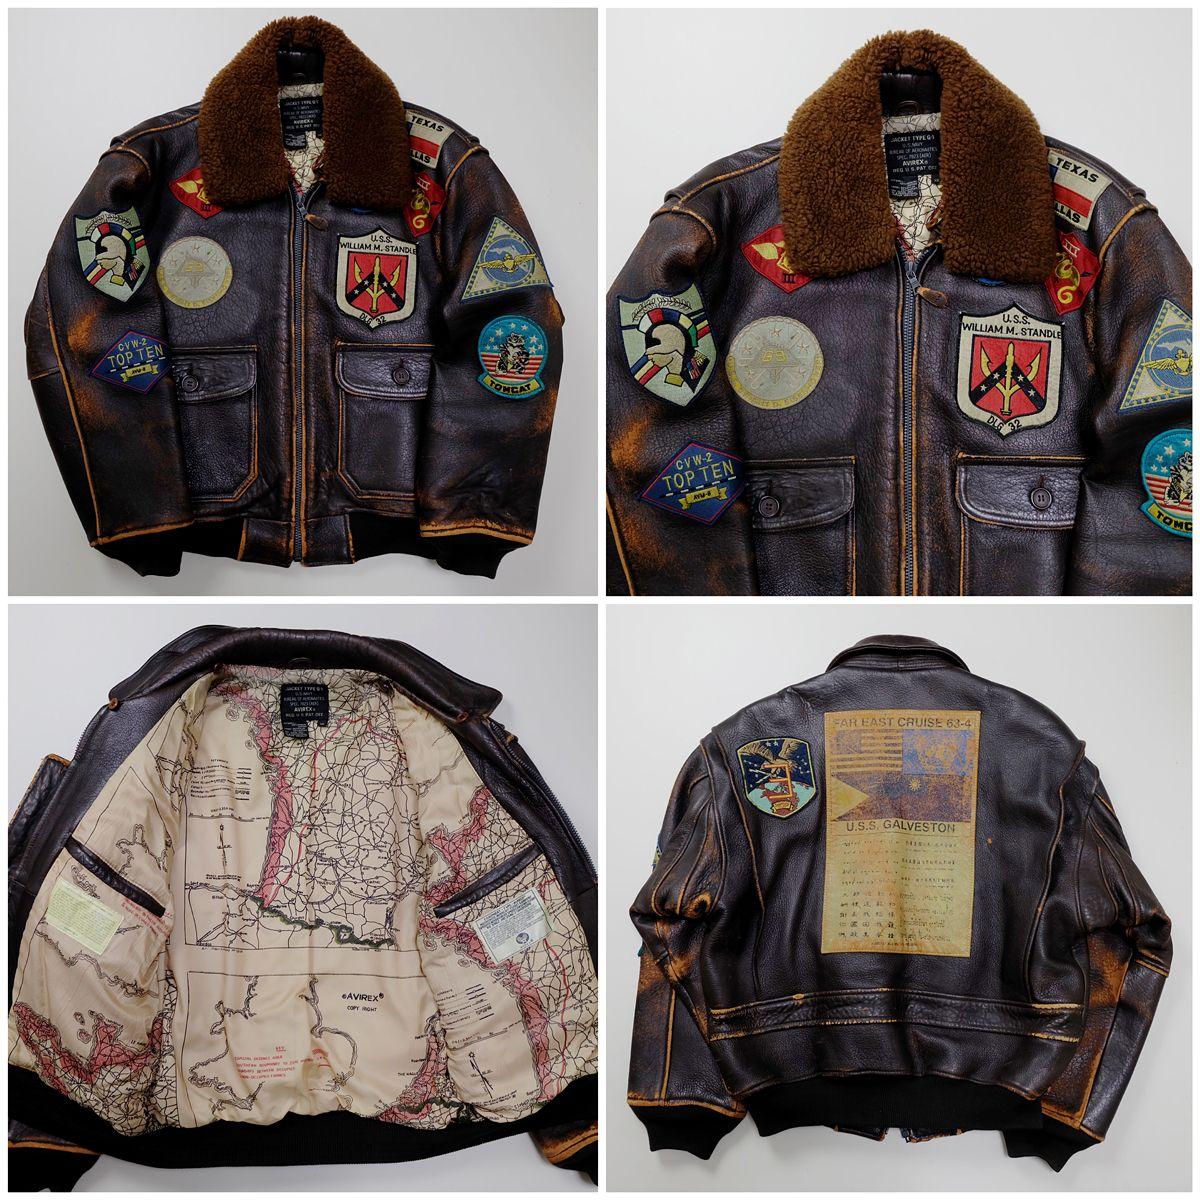 00fca5ad228 Vintage Rare AVIREX US WILLIAM M. STANDLE Texas Patches Patch Military  Flight Bomber Leather Jacket ( SIZE   XS ) - Japan Lover Me Store